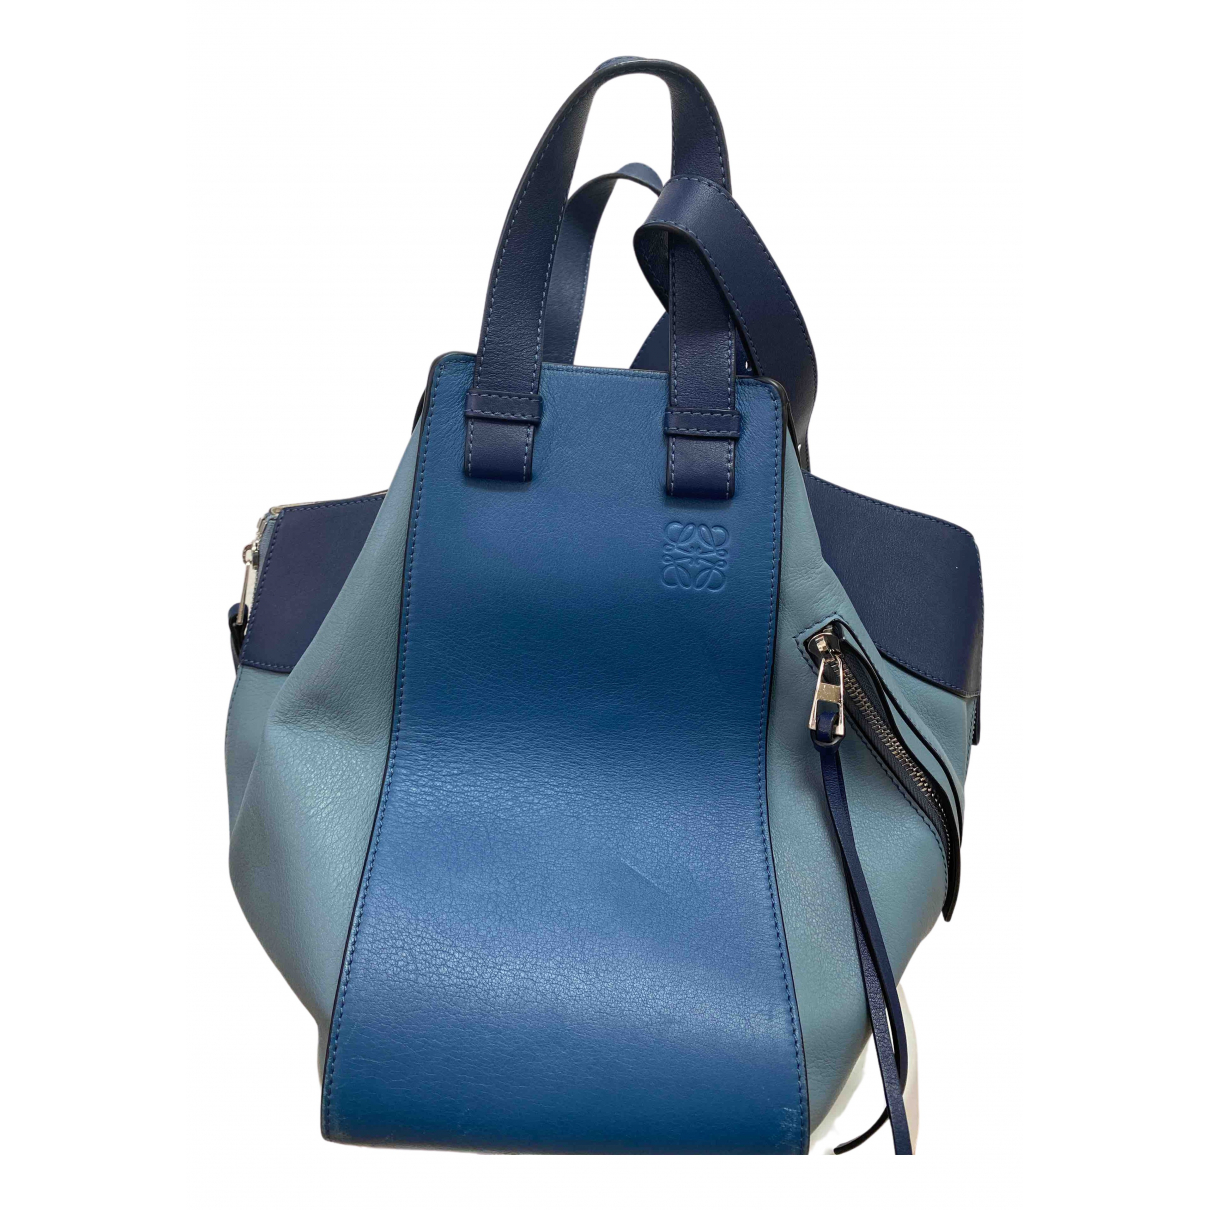 Loewe Hammock Blue Leather handbag for Women \N